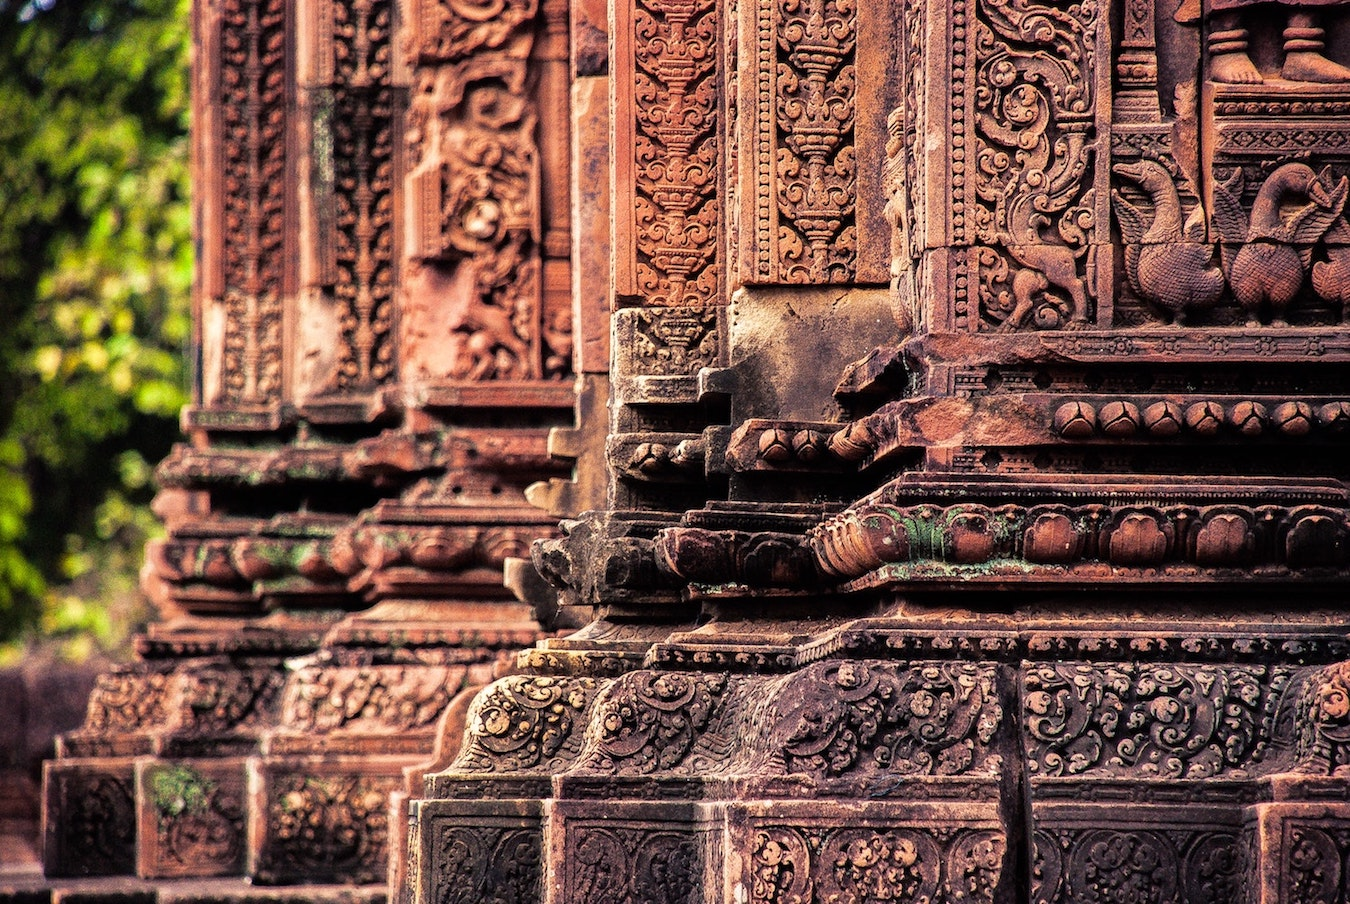 Explore the Intricate Carvings at Banteay Srei